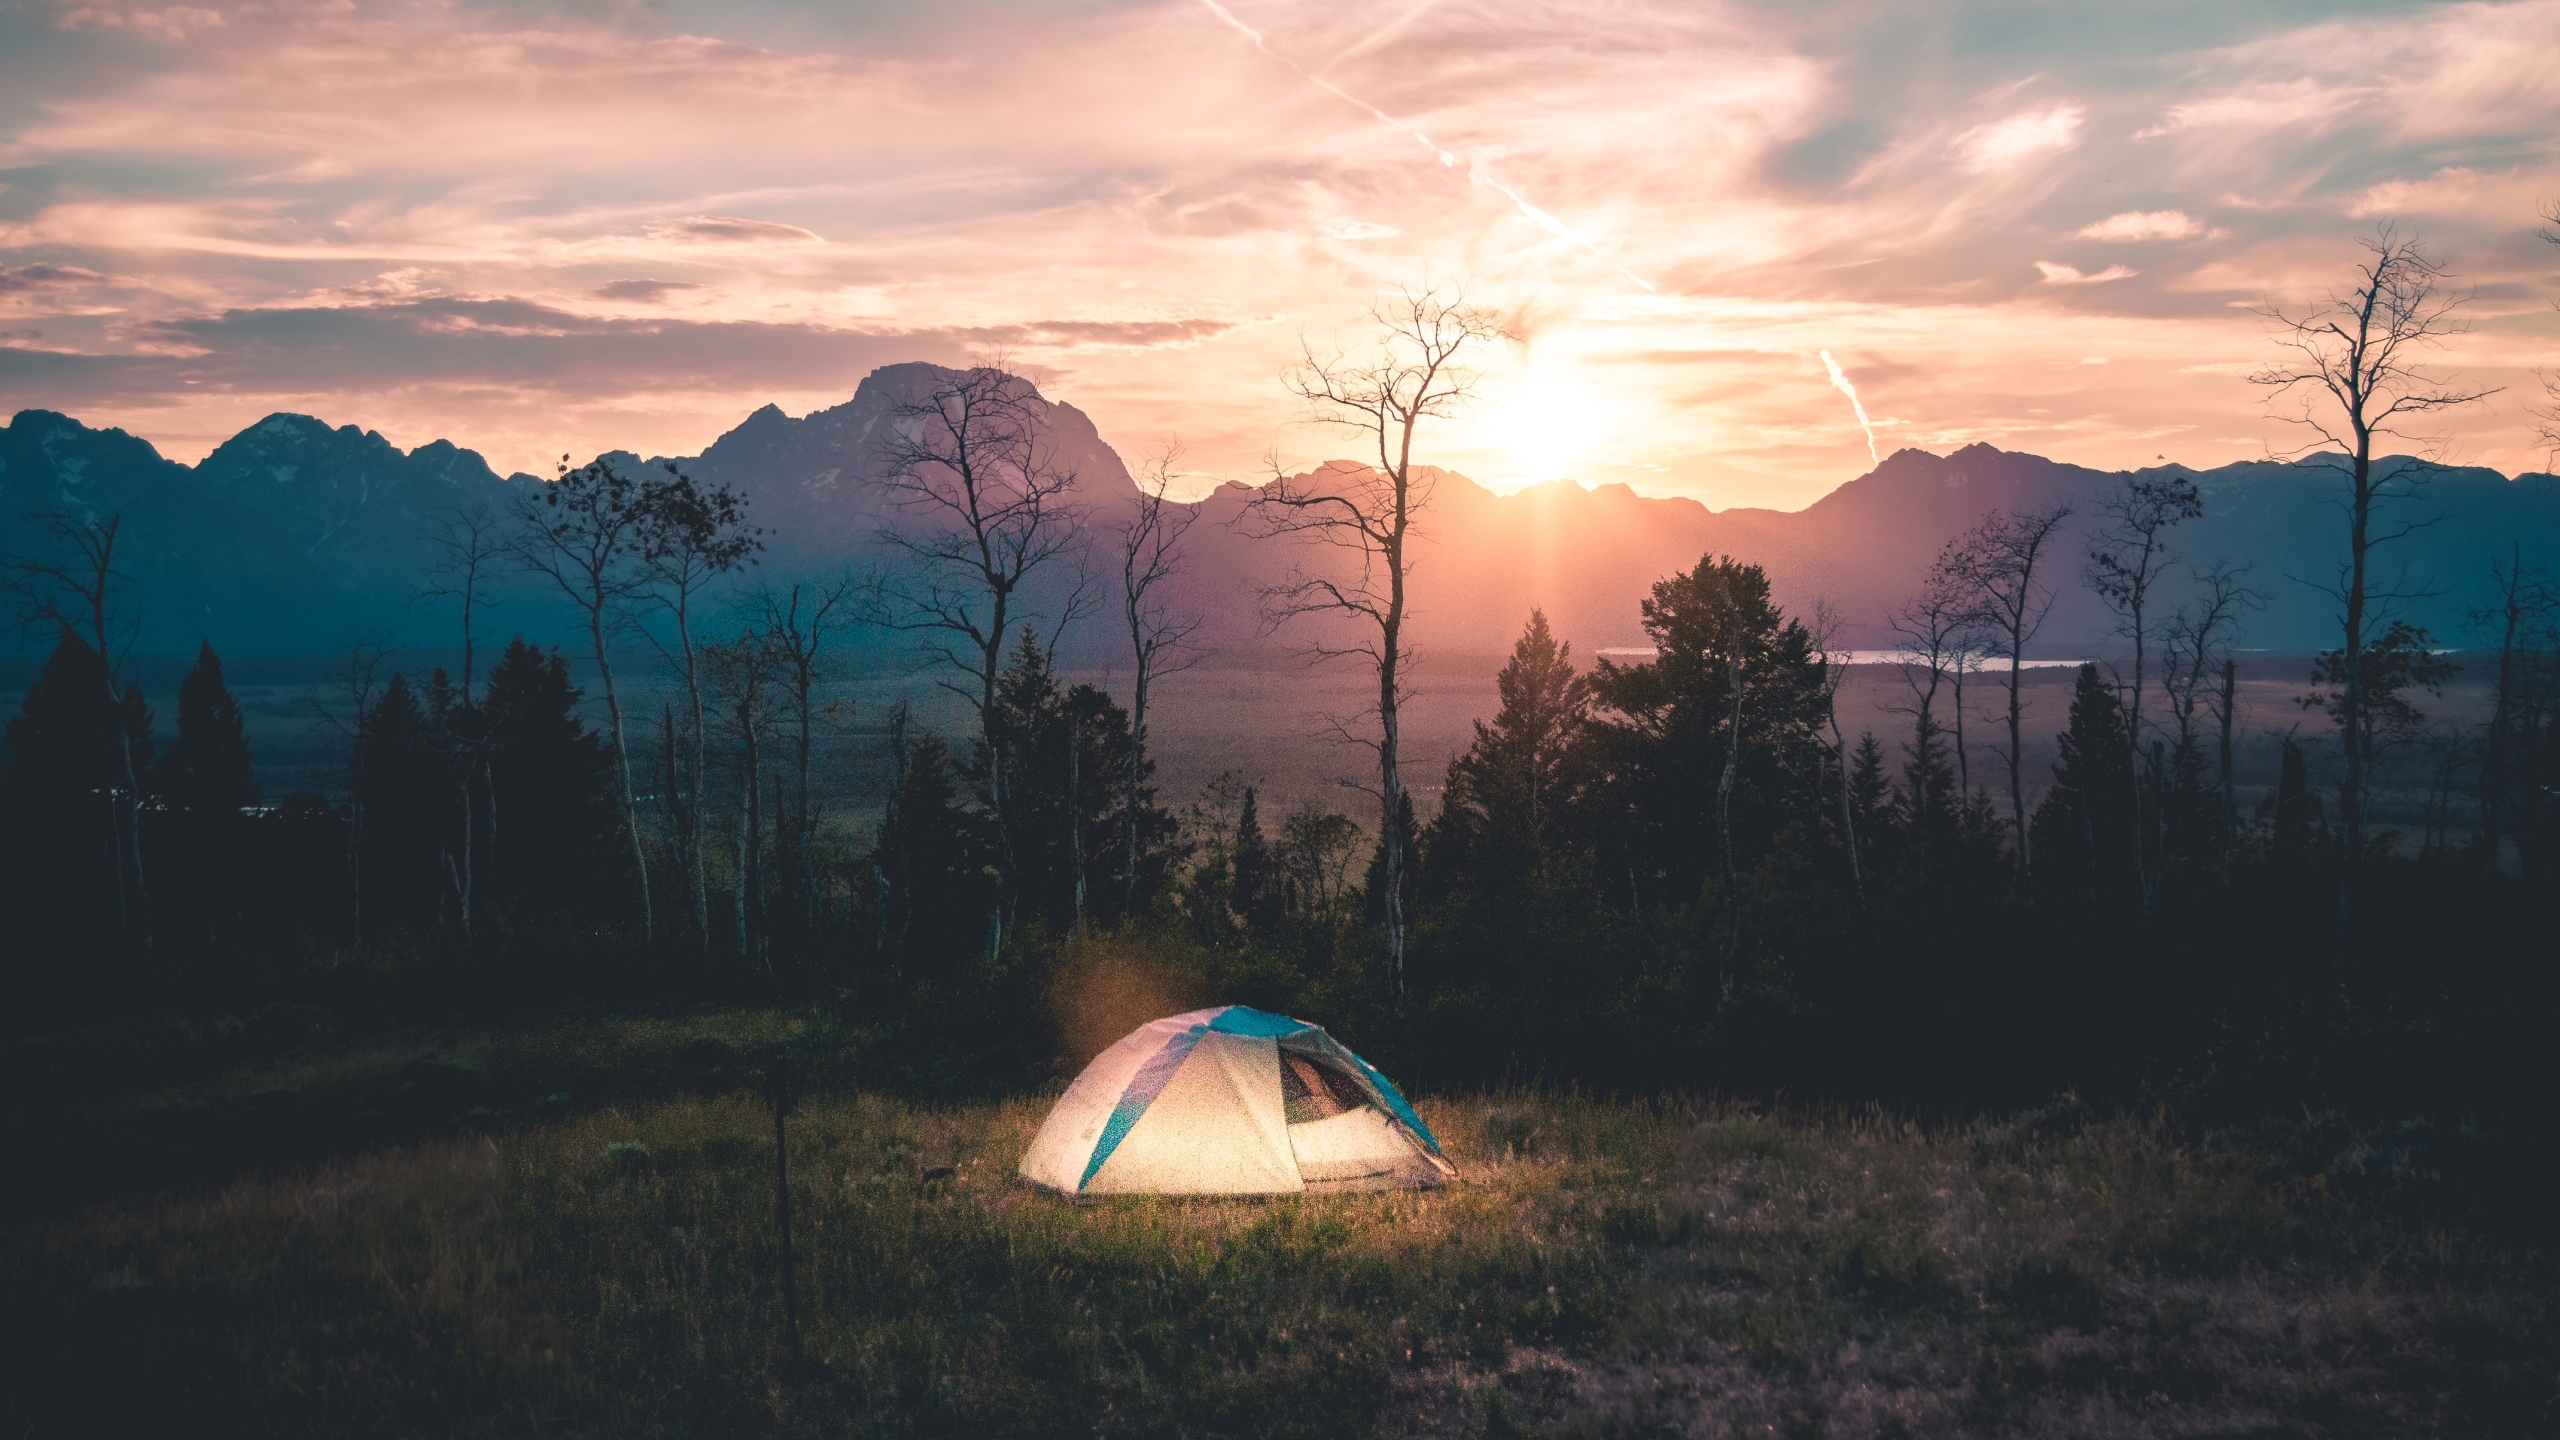 2560x1440 Tent Camping Landscape 1440p Resolution Wallpaper Hd Nature 4k Wallpapers Images Photos And Background